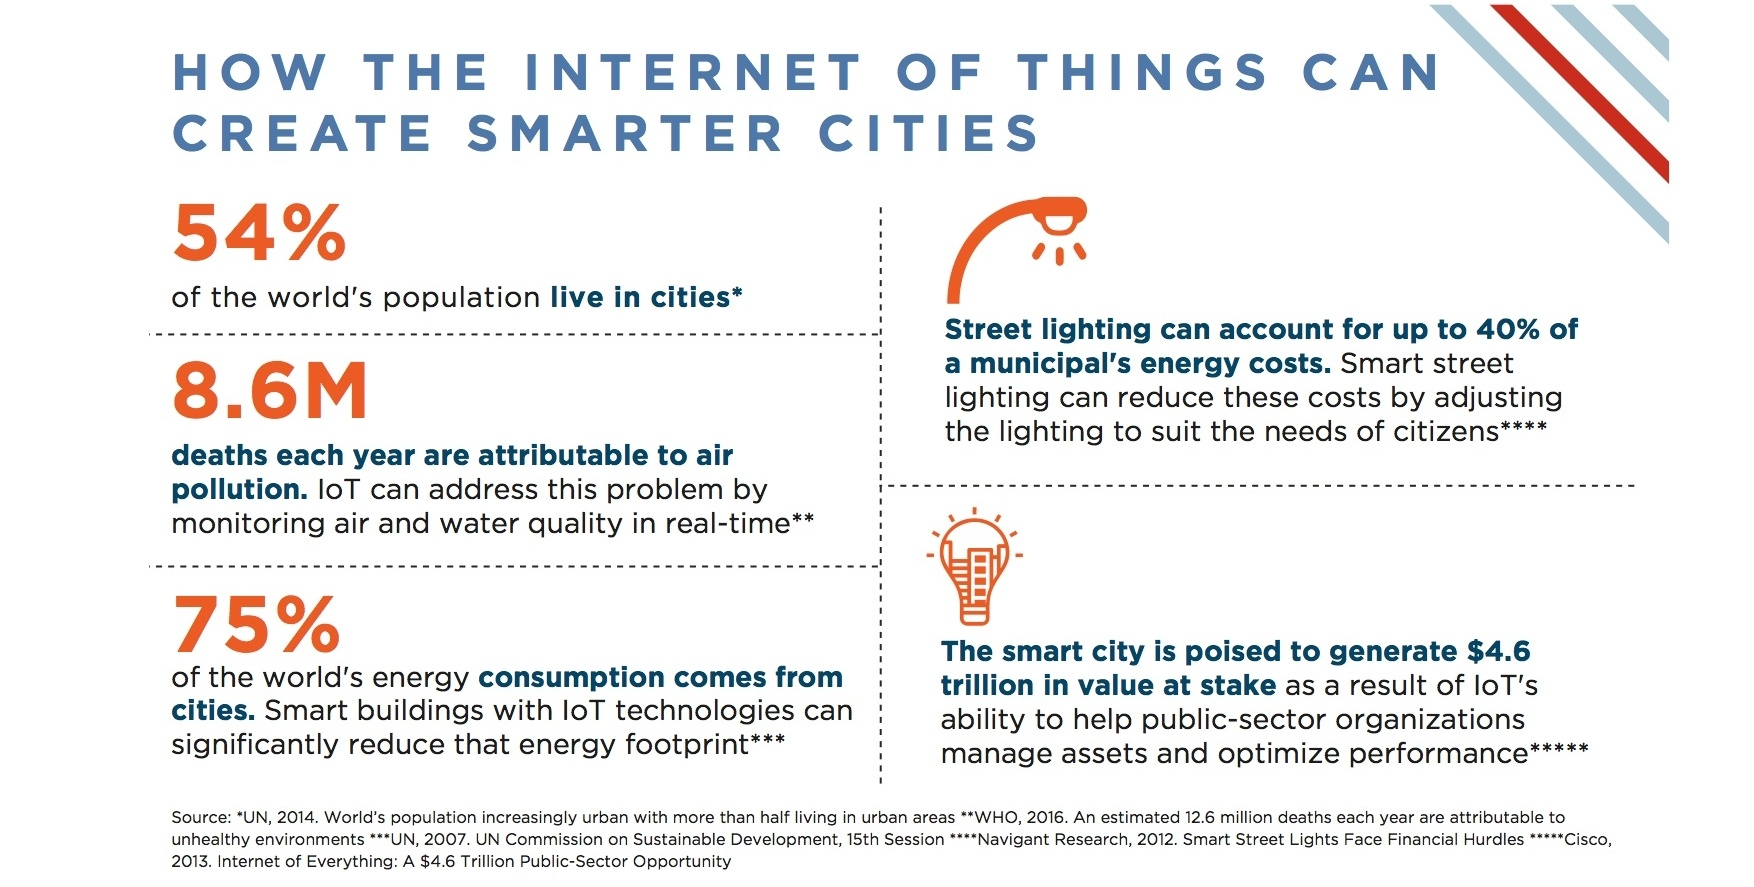 Smart-cities-internet-of-things